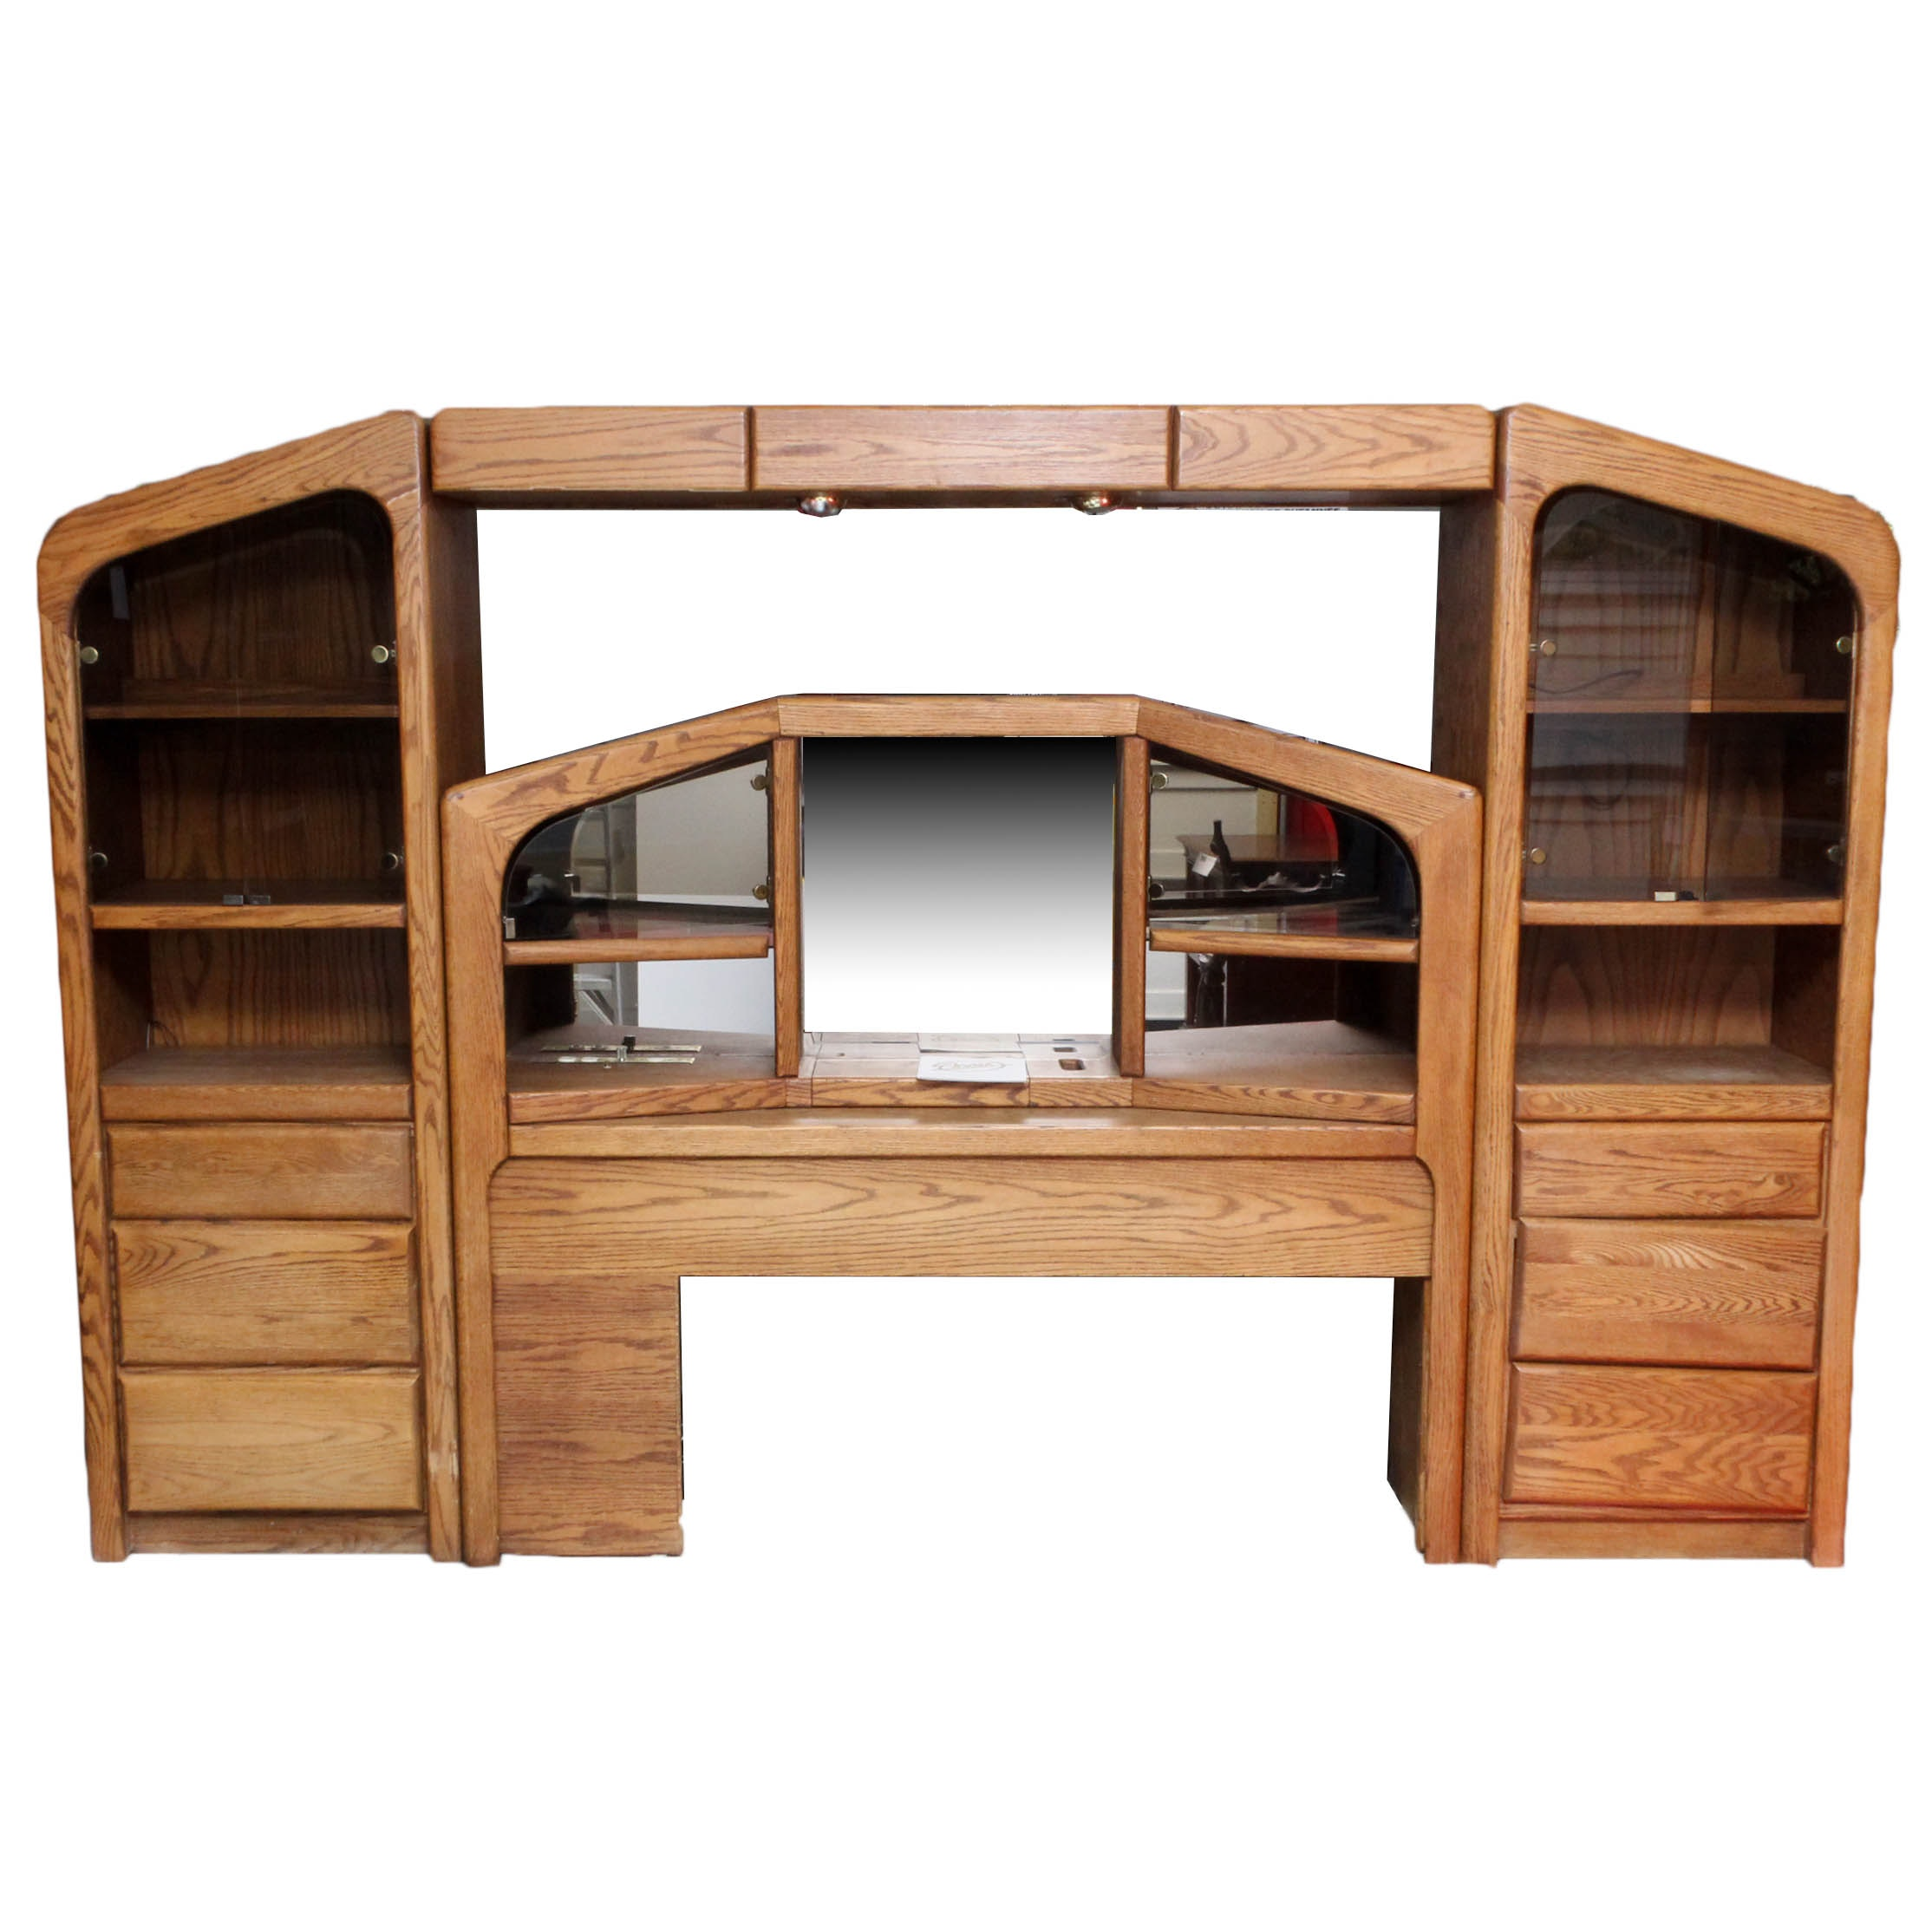 Oak Queen Size Headboard with Storage by Arbek, Late 20th Century